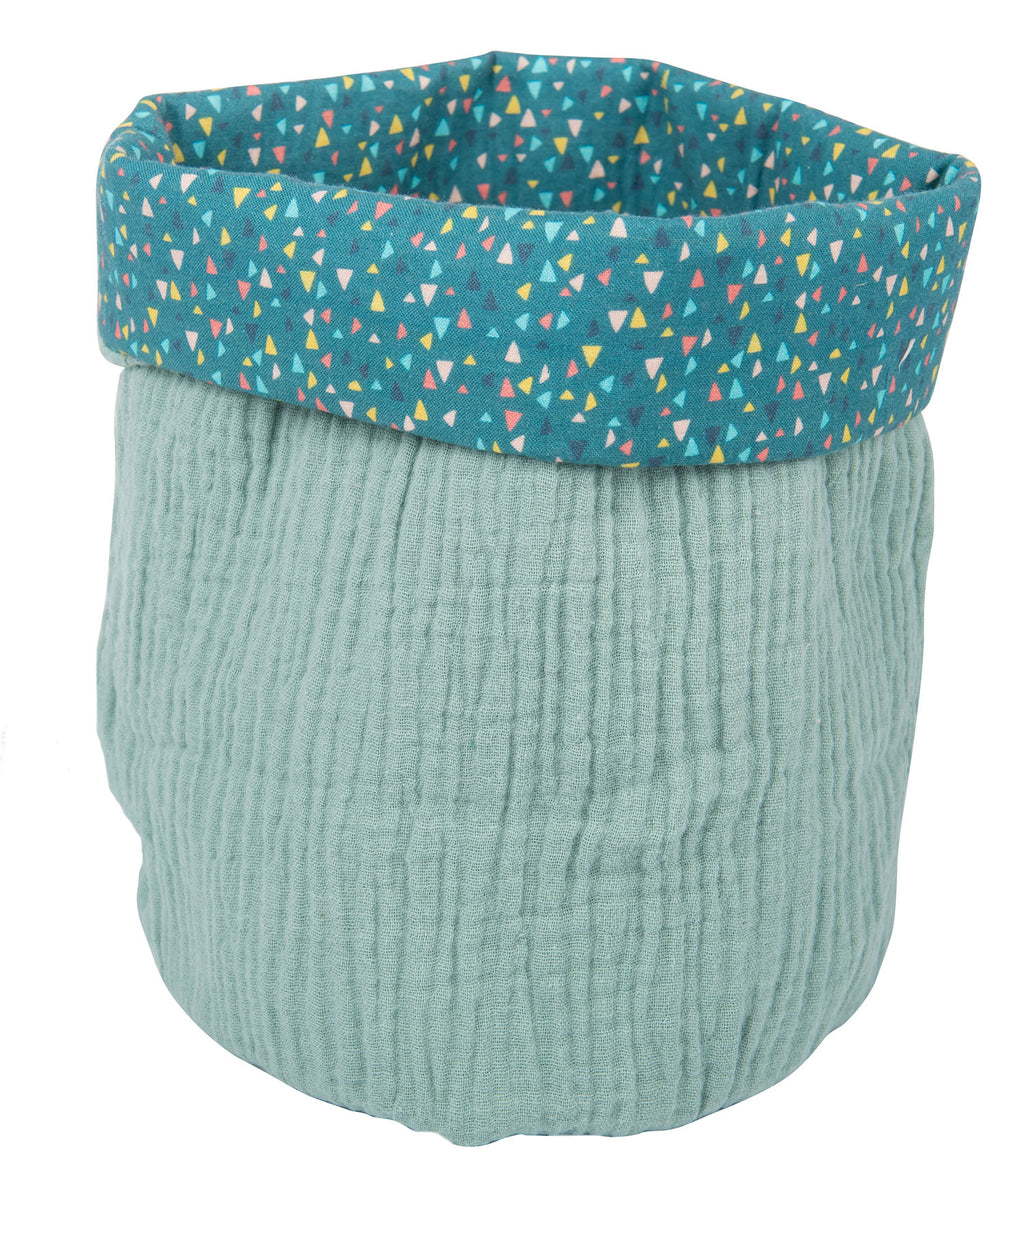 Moulin Roty | 100% Cotton Round Basket | Blue